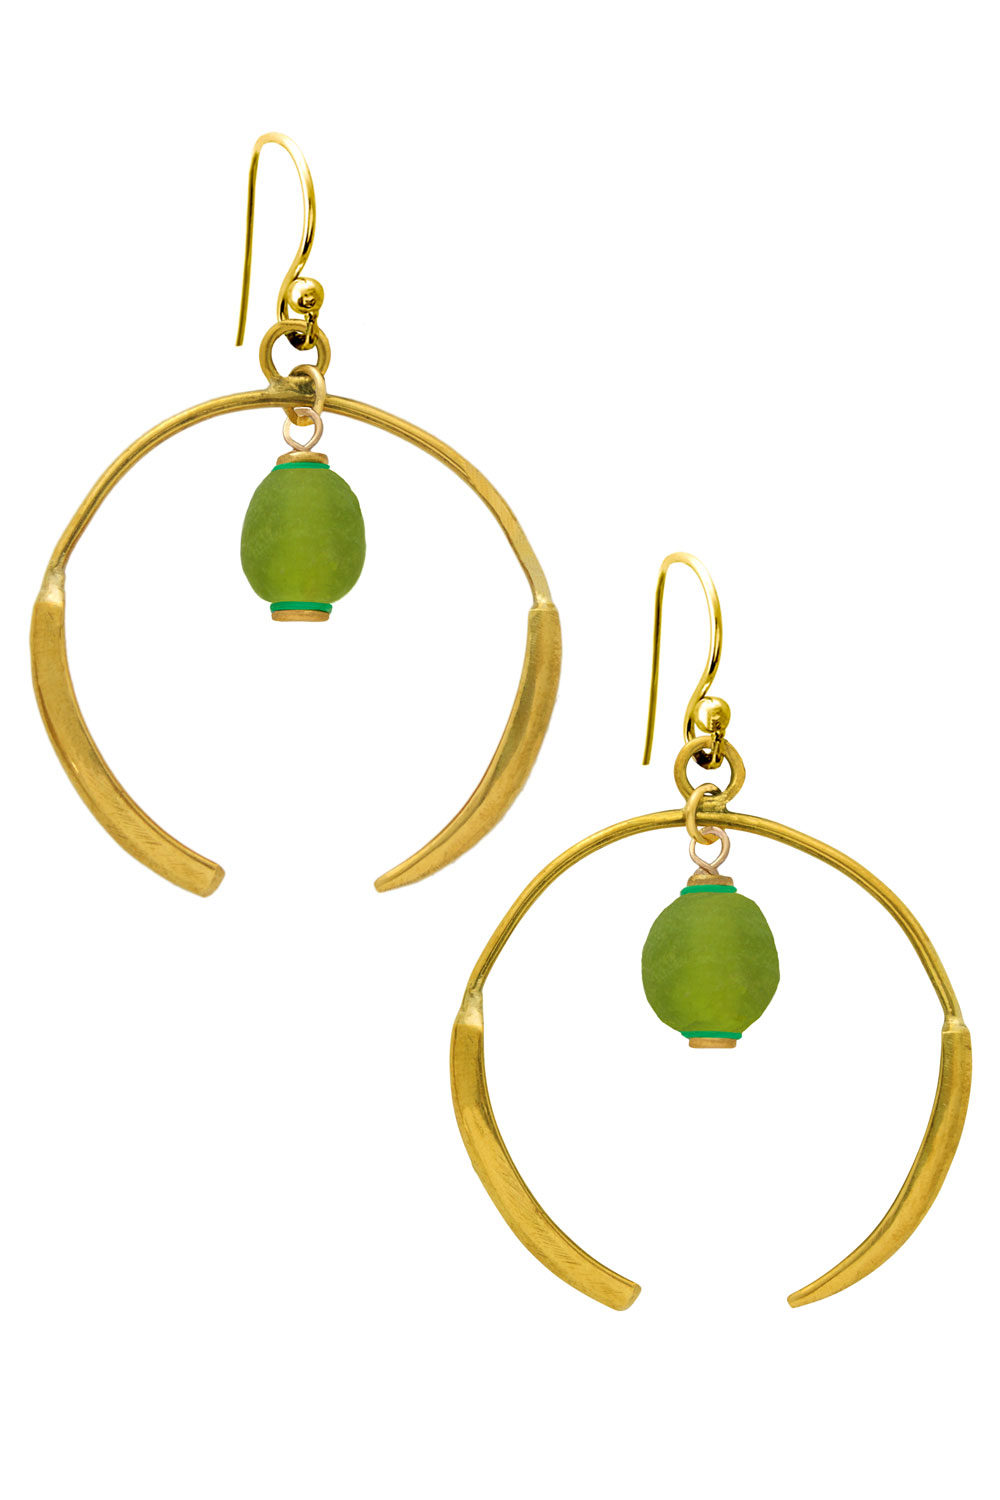 Kijani Green Aza Earrings by SHIKHAZURI